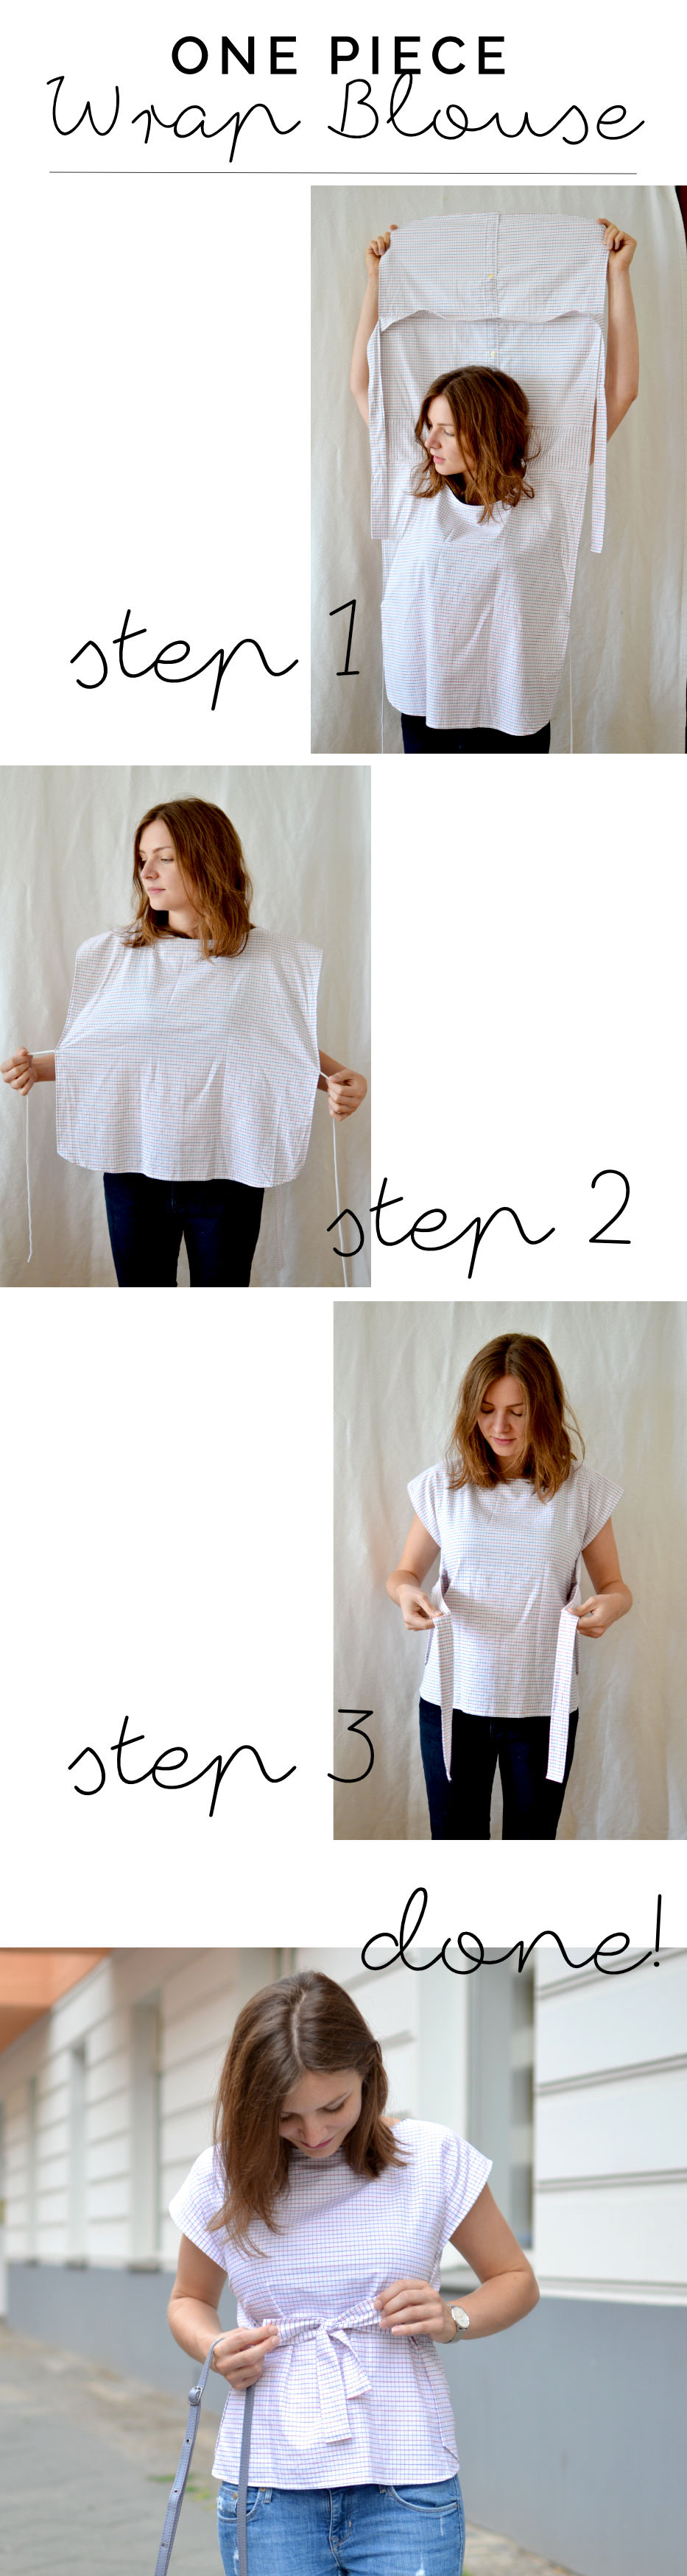 one-piece-wrap-blouse-diy-how-to